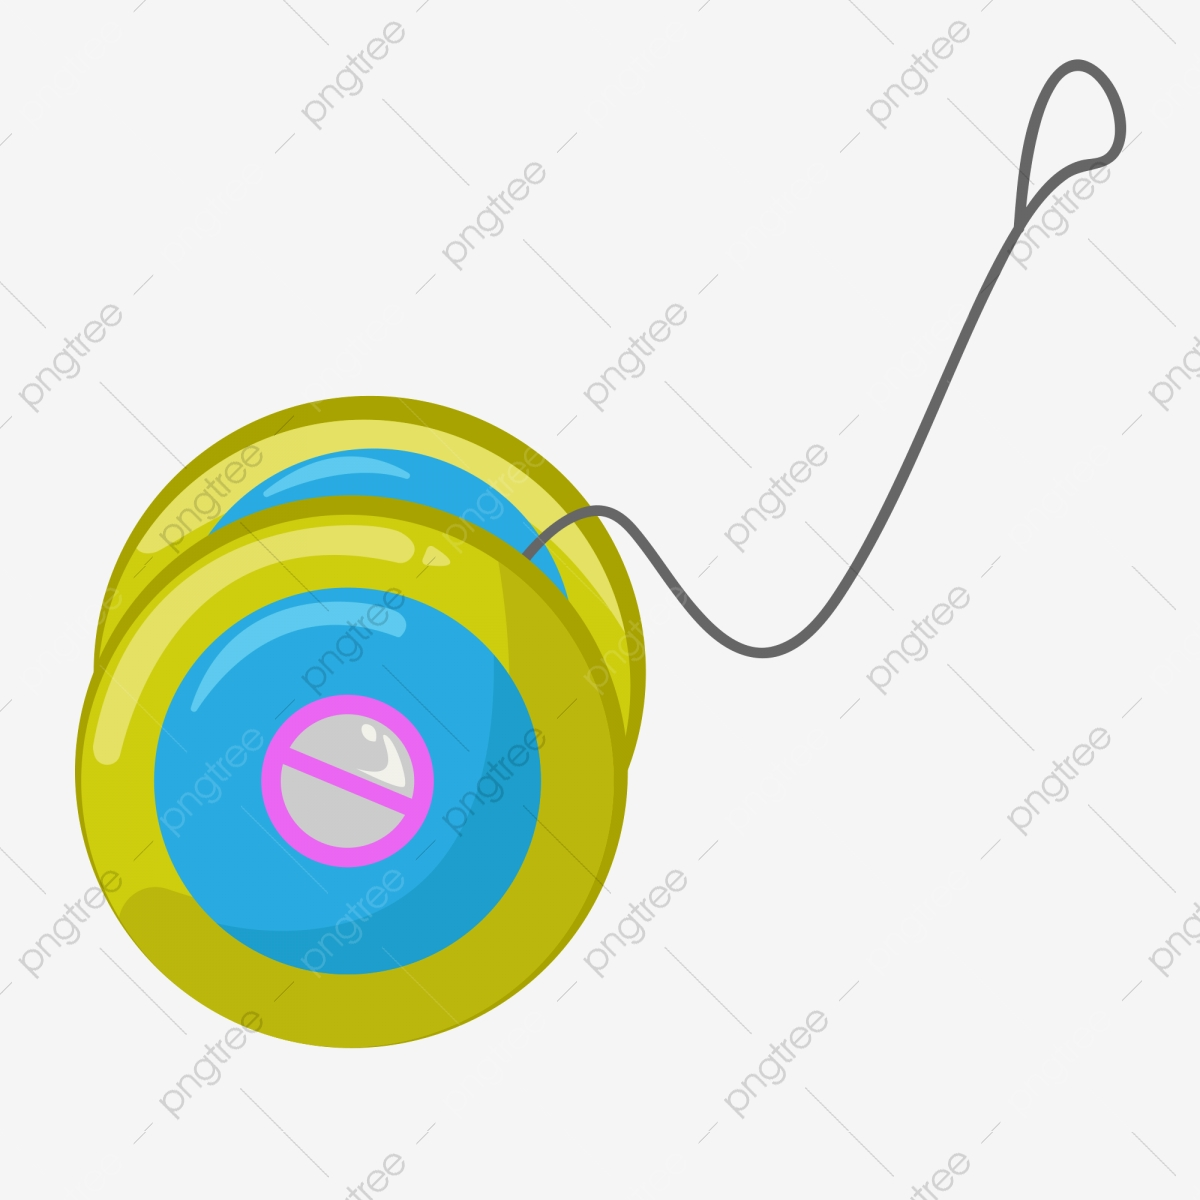 Toy Yo Yo Play Game, Game, Hand, Toy PNG and Vector with Transparent  Background for Free Download